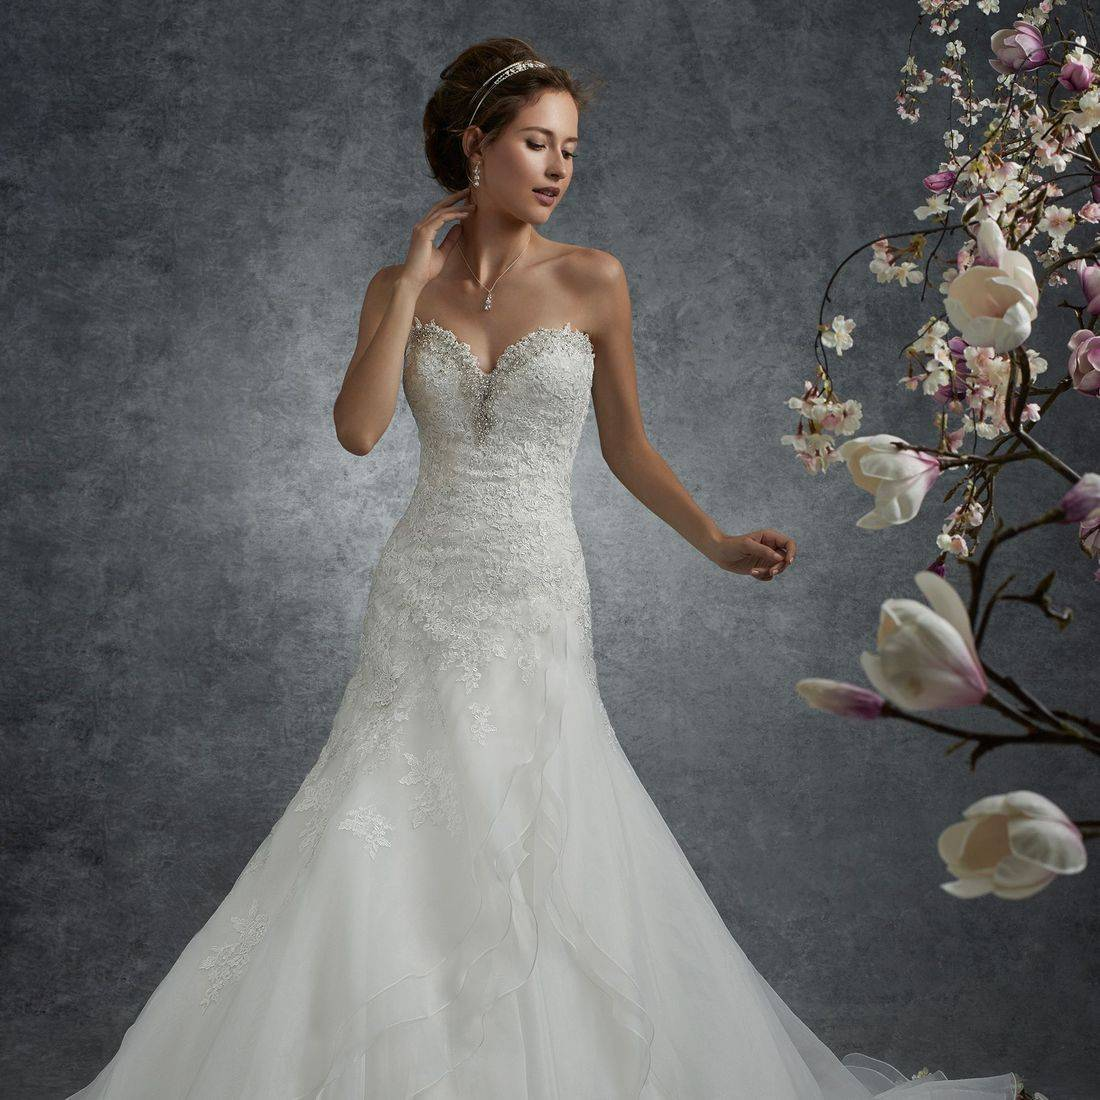 Sophia Tolli, sophia tolli wedding dress, a line wedding dress, fit and flare wedding dress, side panel wedding dress, chapel length train, lace, sparkle, sweetheart neckline, lace up back, corset back